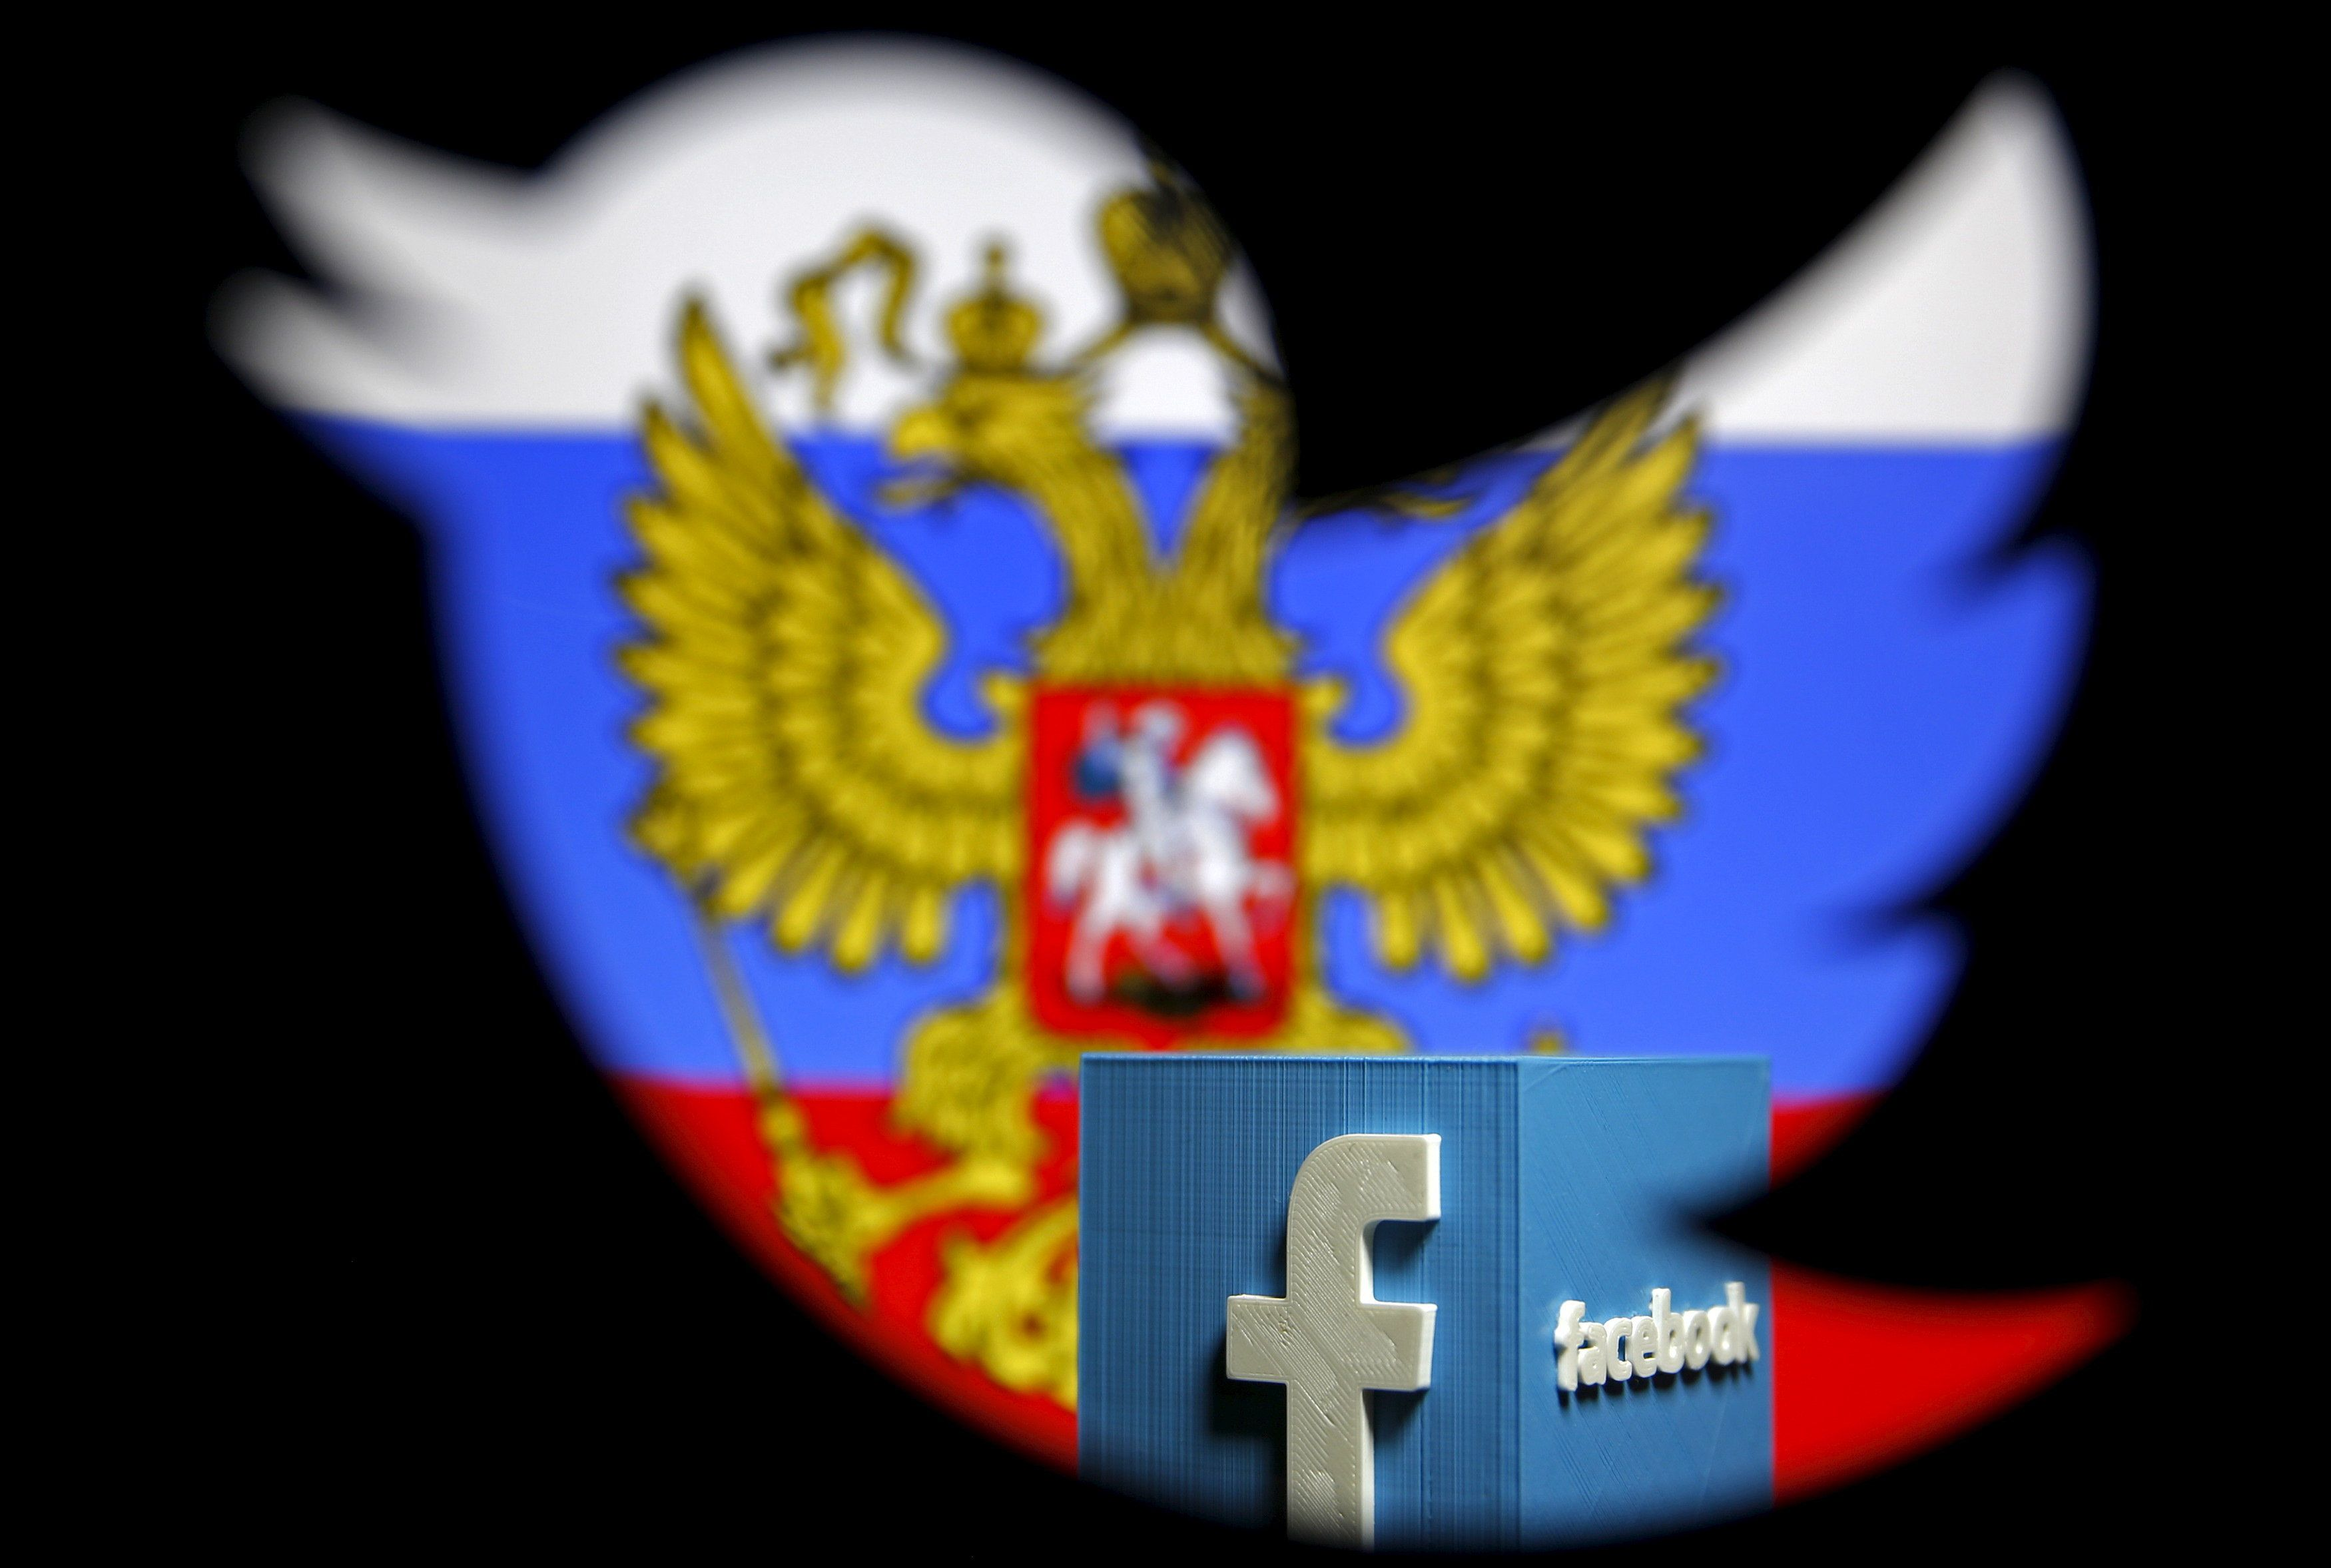 A Russian flag and a model of the Facebook logo are seen through a cutout of the Twitter logo in this photo illustration